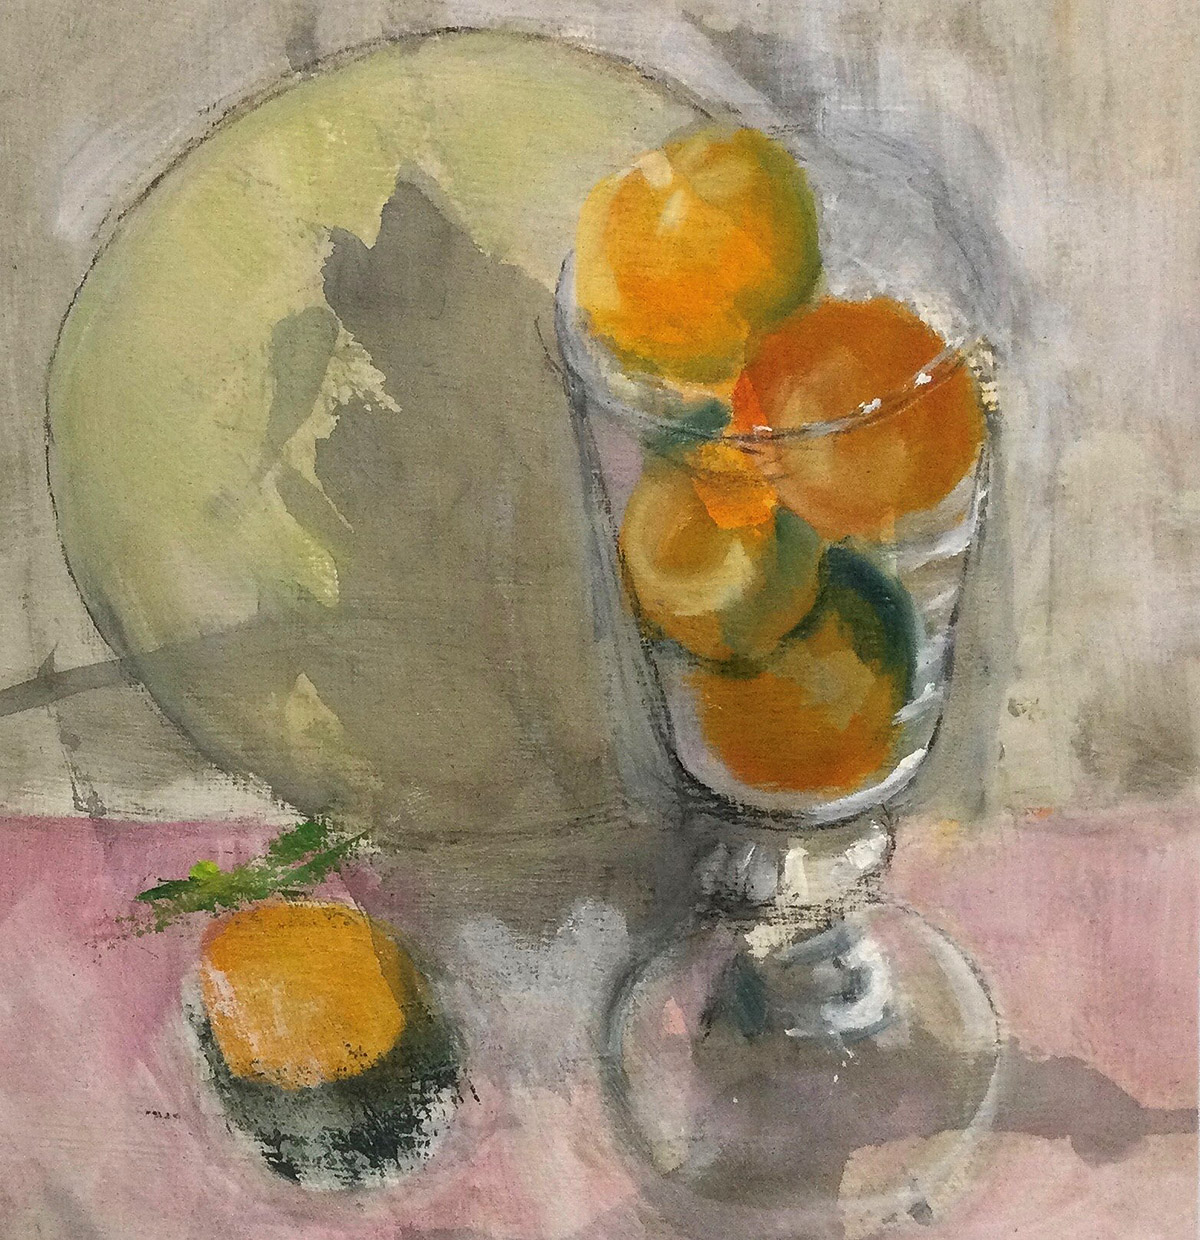 Mary Lambie, 'Satsumas in a glass', oil on paper and cradled board